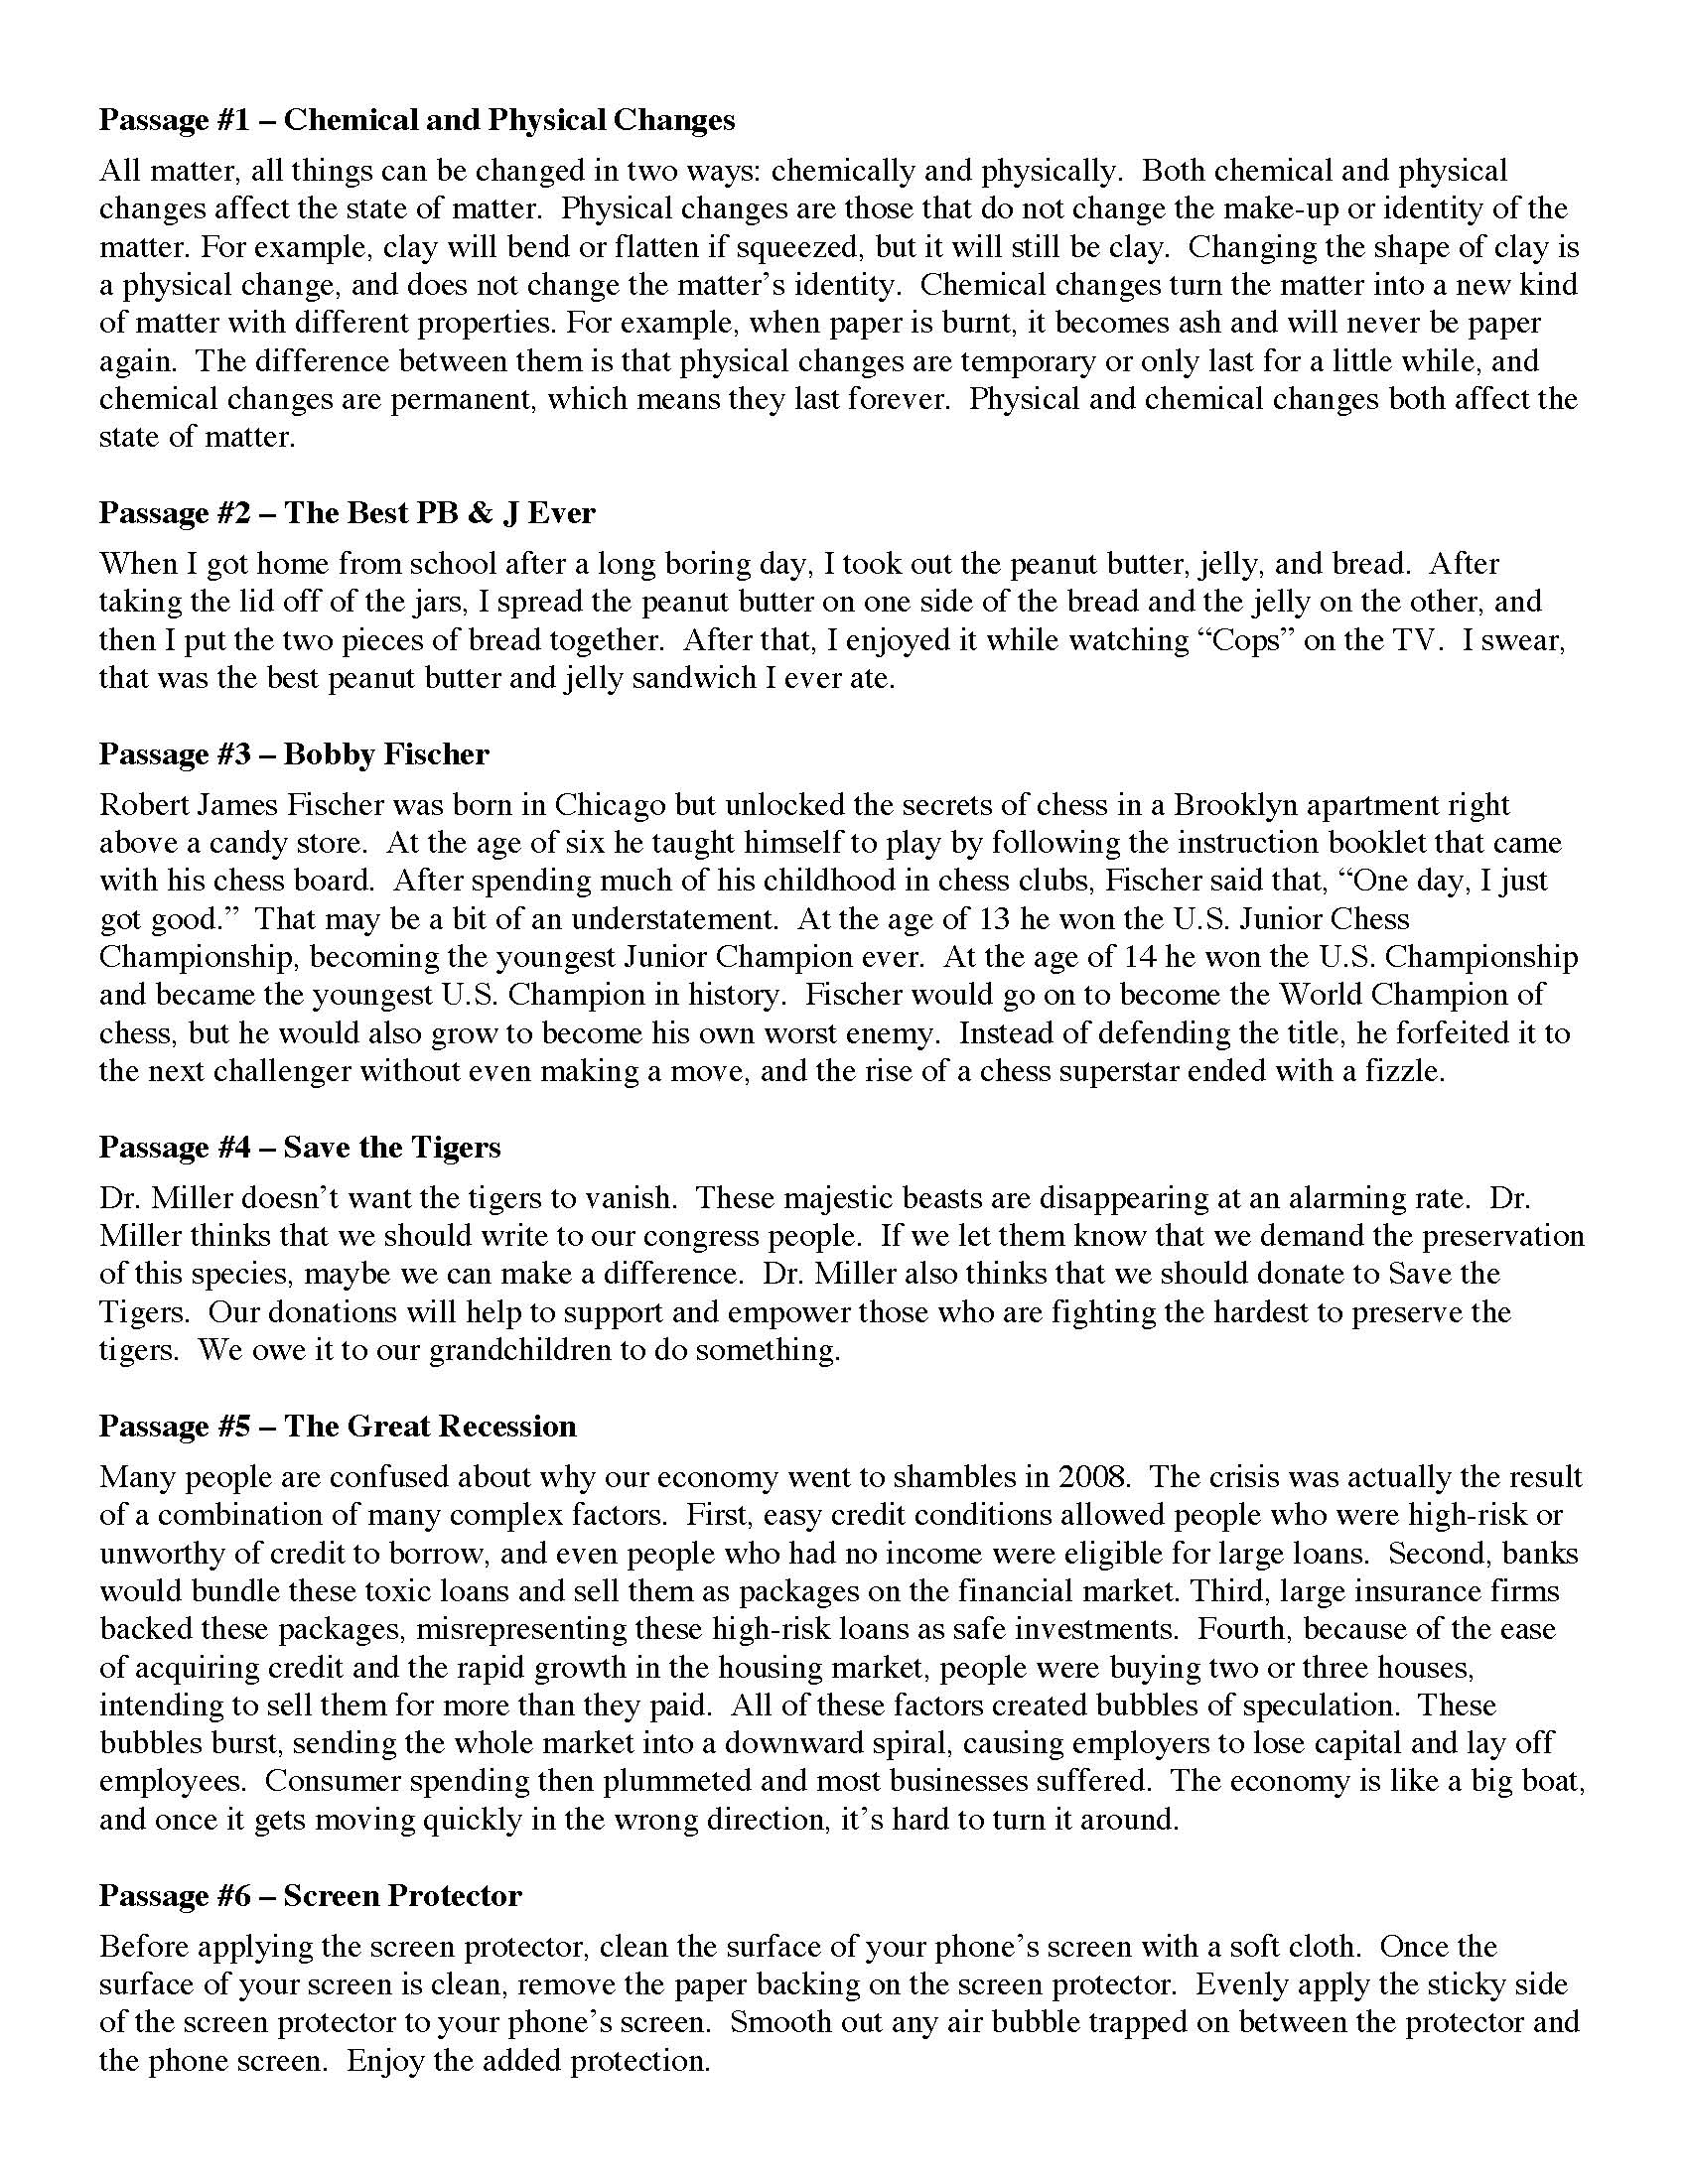 text structure practice worksheets moreover Identifying Text Structure Worksheets   Siteraven further yzing text structure worksheets – gipnoz info besides Cause and Effect   Text Structures   Ereading Worksheets besides Summarizing Worksheet Worksheets For Grade High Lesson Plans additionally S le Grade Paragraph Finding The Main Idea Worksheets Read Theme likewise text structure worksheets 4th grade – newstalk info furthermore Identifying Main Idea Worksheet Free Printable Worksheets Made moreover This is a lesson plan  student worksheet  and teacher answer key to likewise Text Structure Worksheet 1   Preview together with  likewise Text Structure Sequence Worksheets Good Identifying Text Structure in addition  additionally text structure worksheets for middle – newstalk info additionally  furthermore Identifying Text Structure Worksheet Answers. on identifying text structure worksheet answers